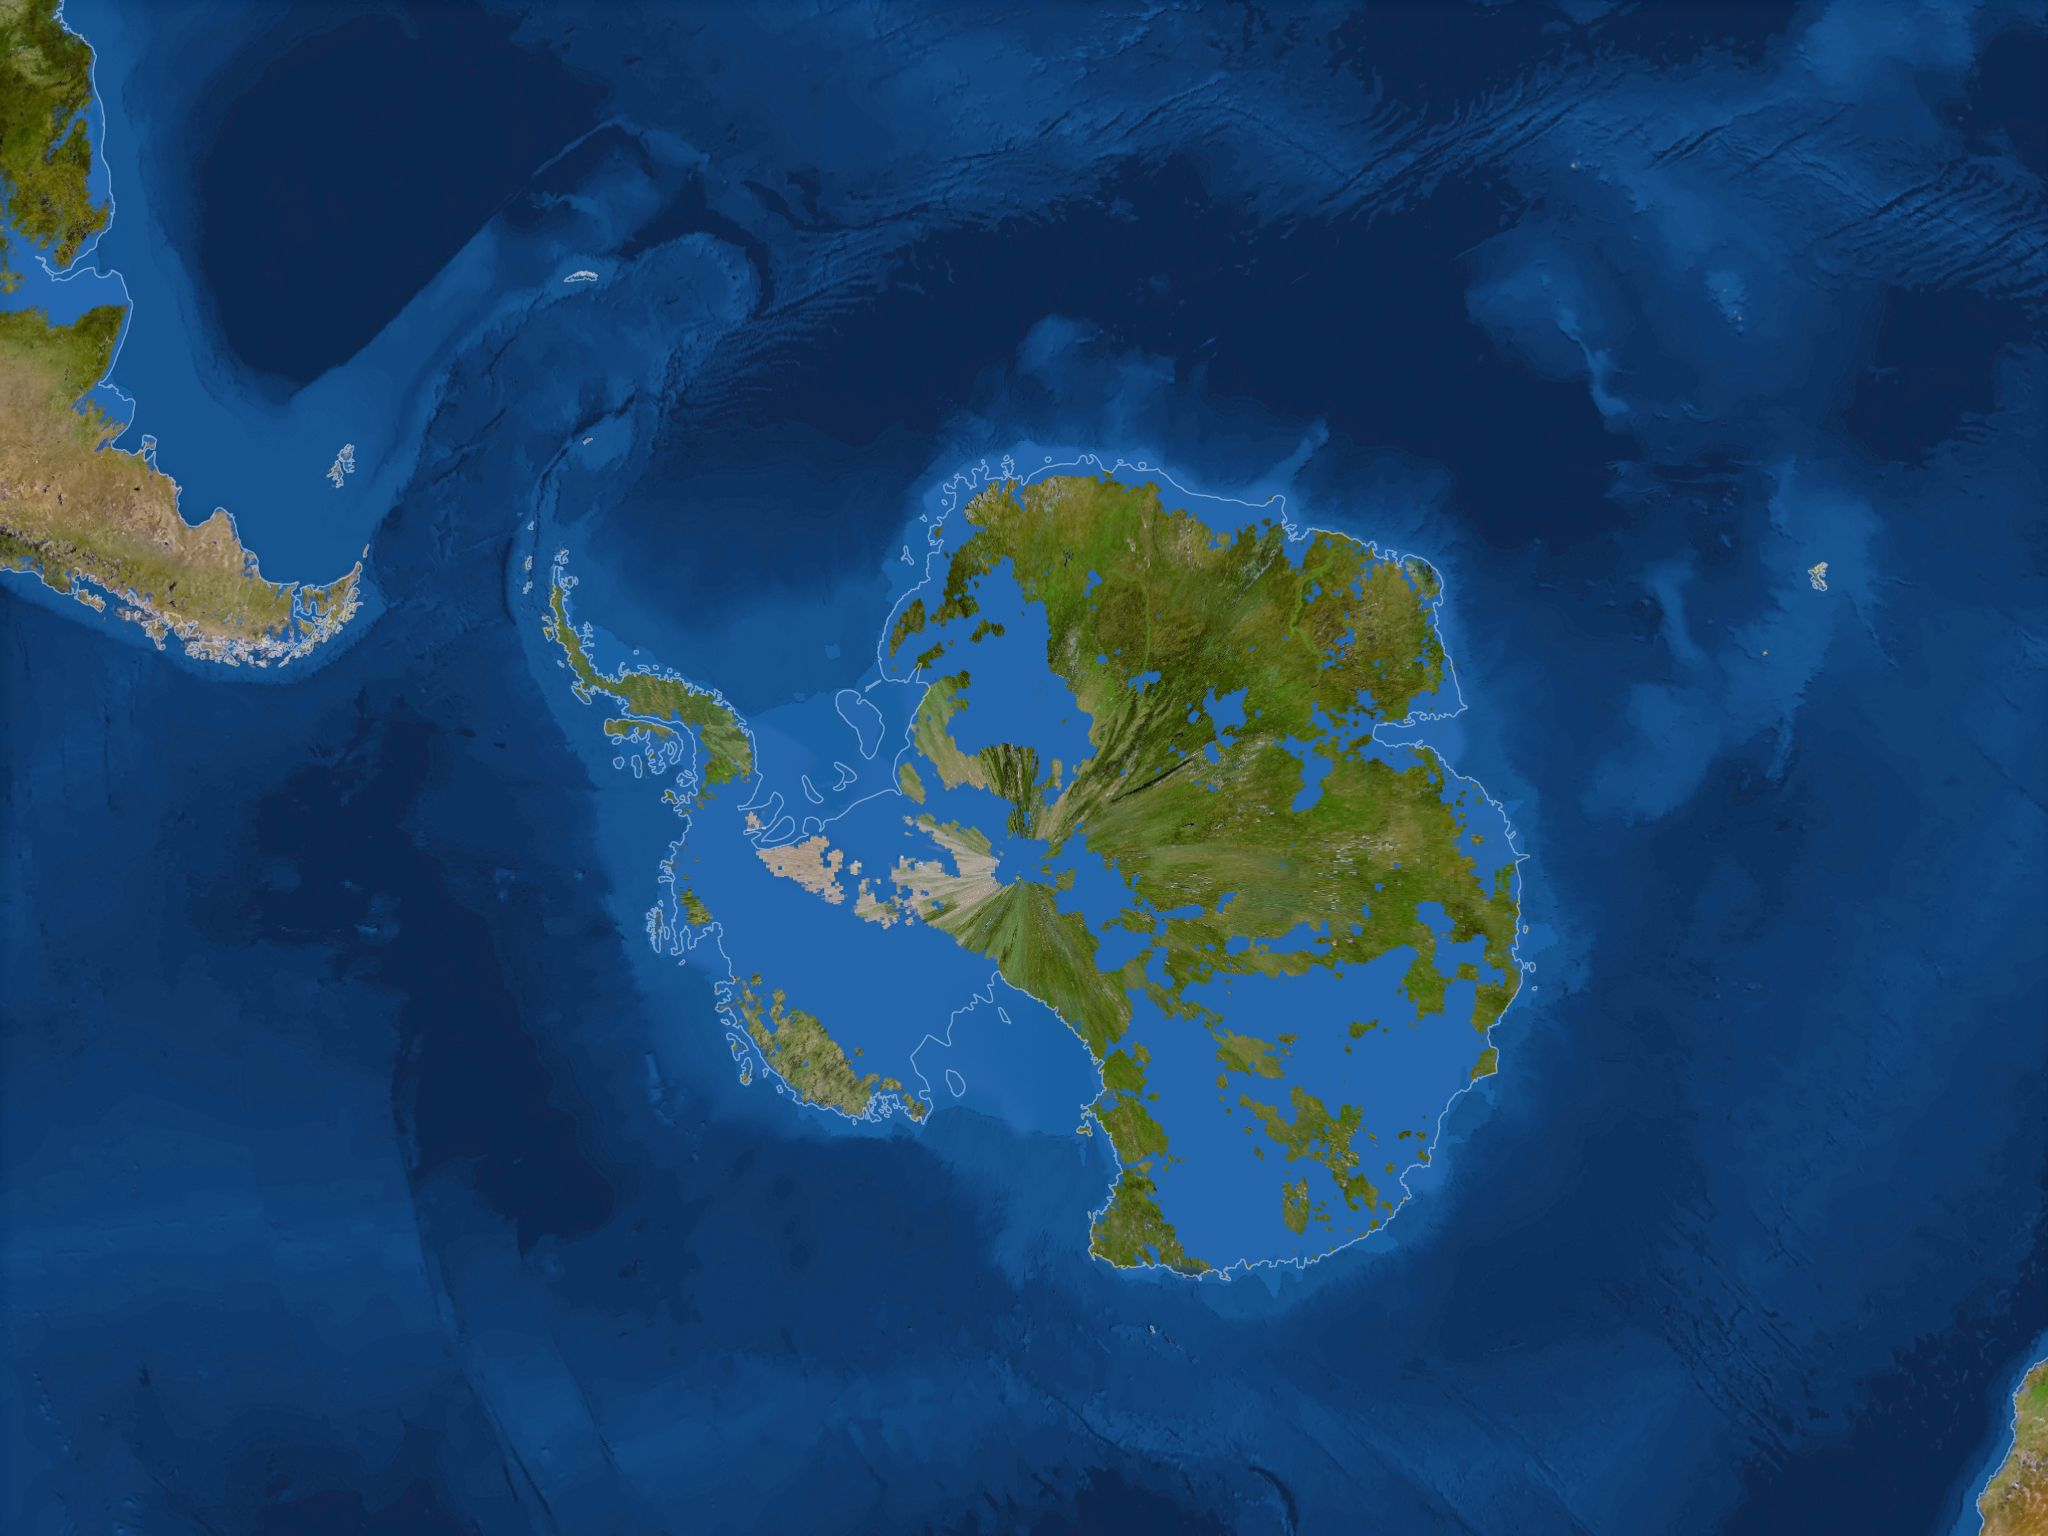 What the world would look like if all the ice melted earth an interactive map showing how the continents would fare should all ice on earth melt courtesy of national geographic gumiabroncs Image collections